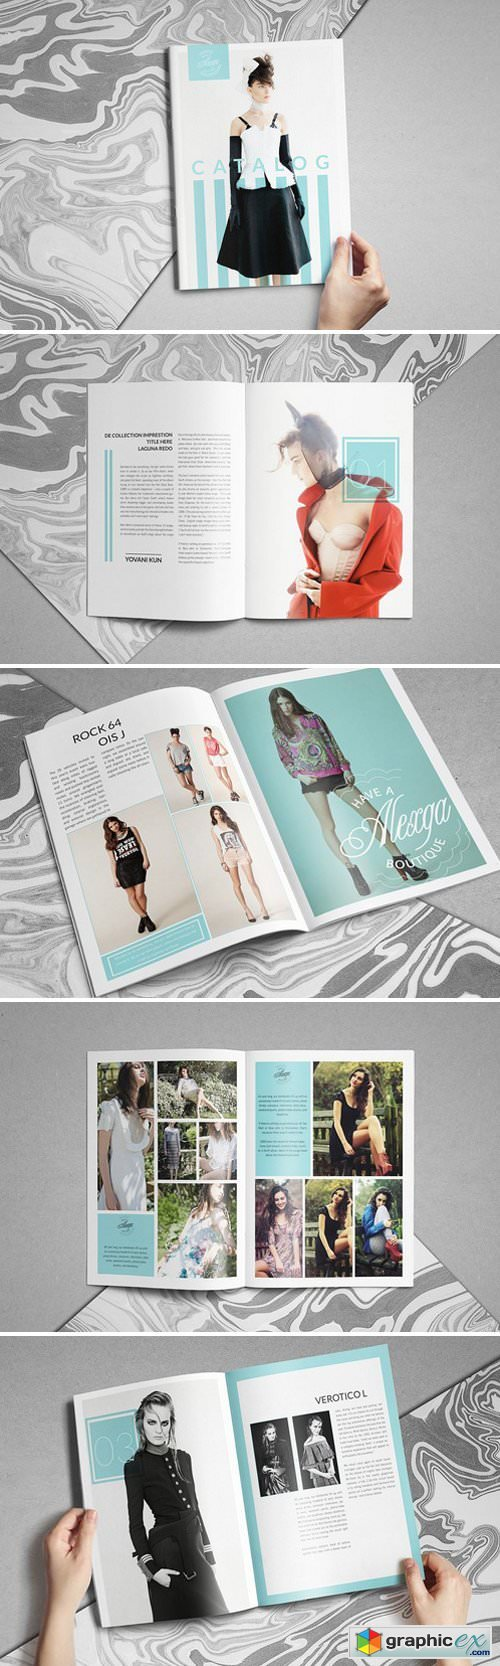 lookbook fashion catalog  u00bb free download vector stock